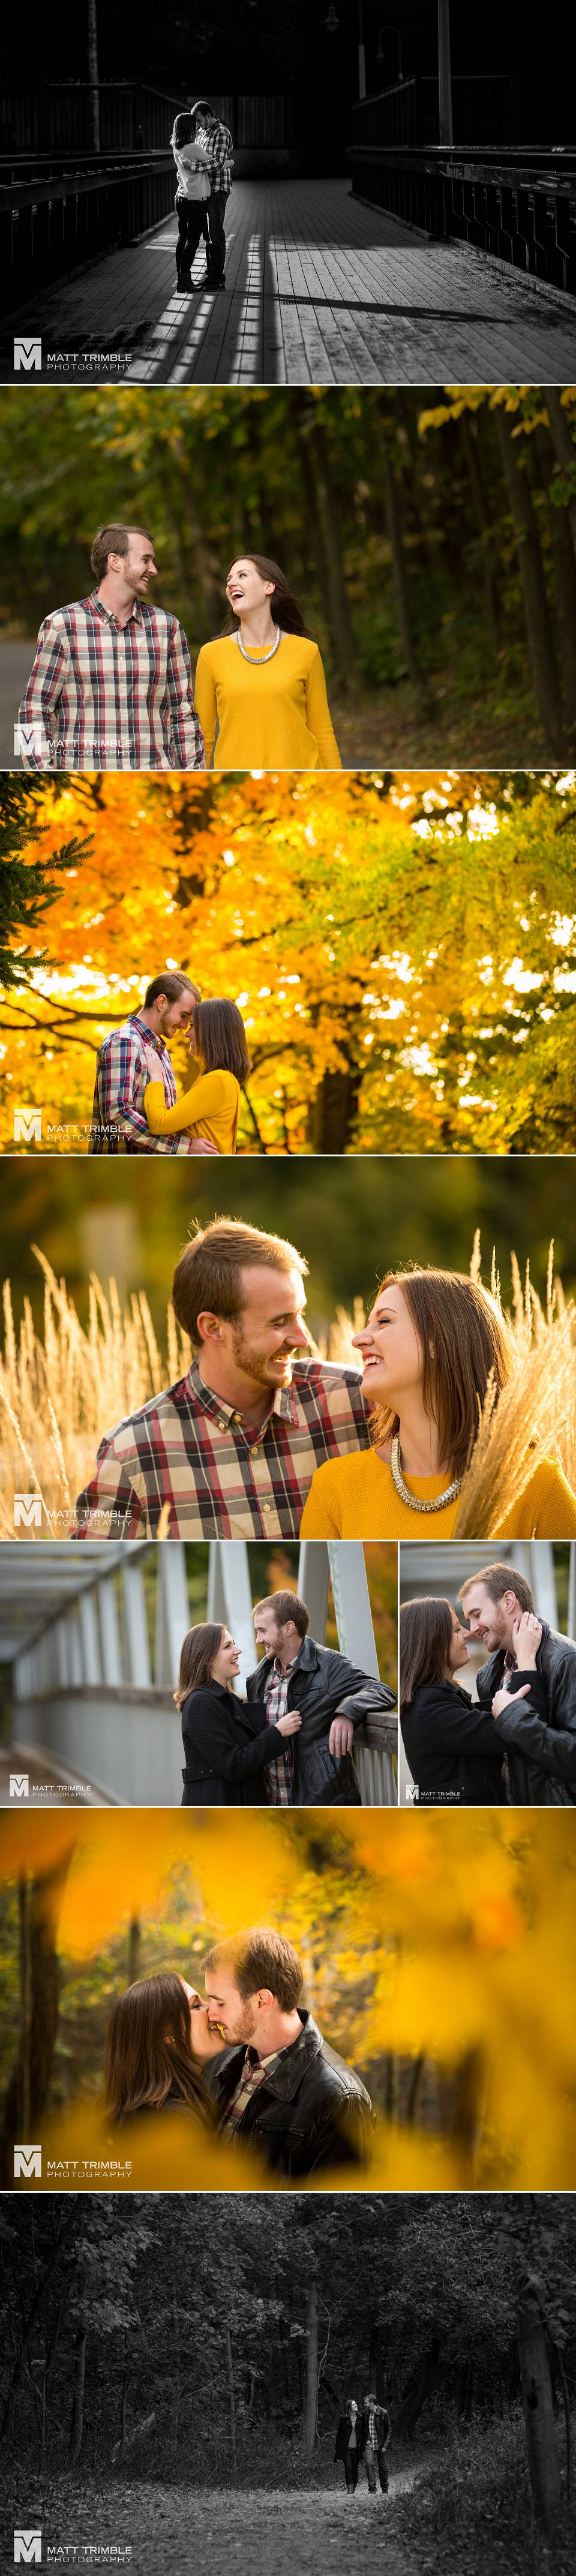 Engagement photography in Toronto Beltline Park